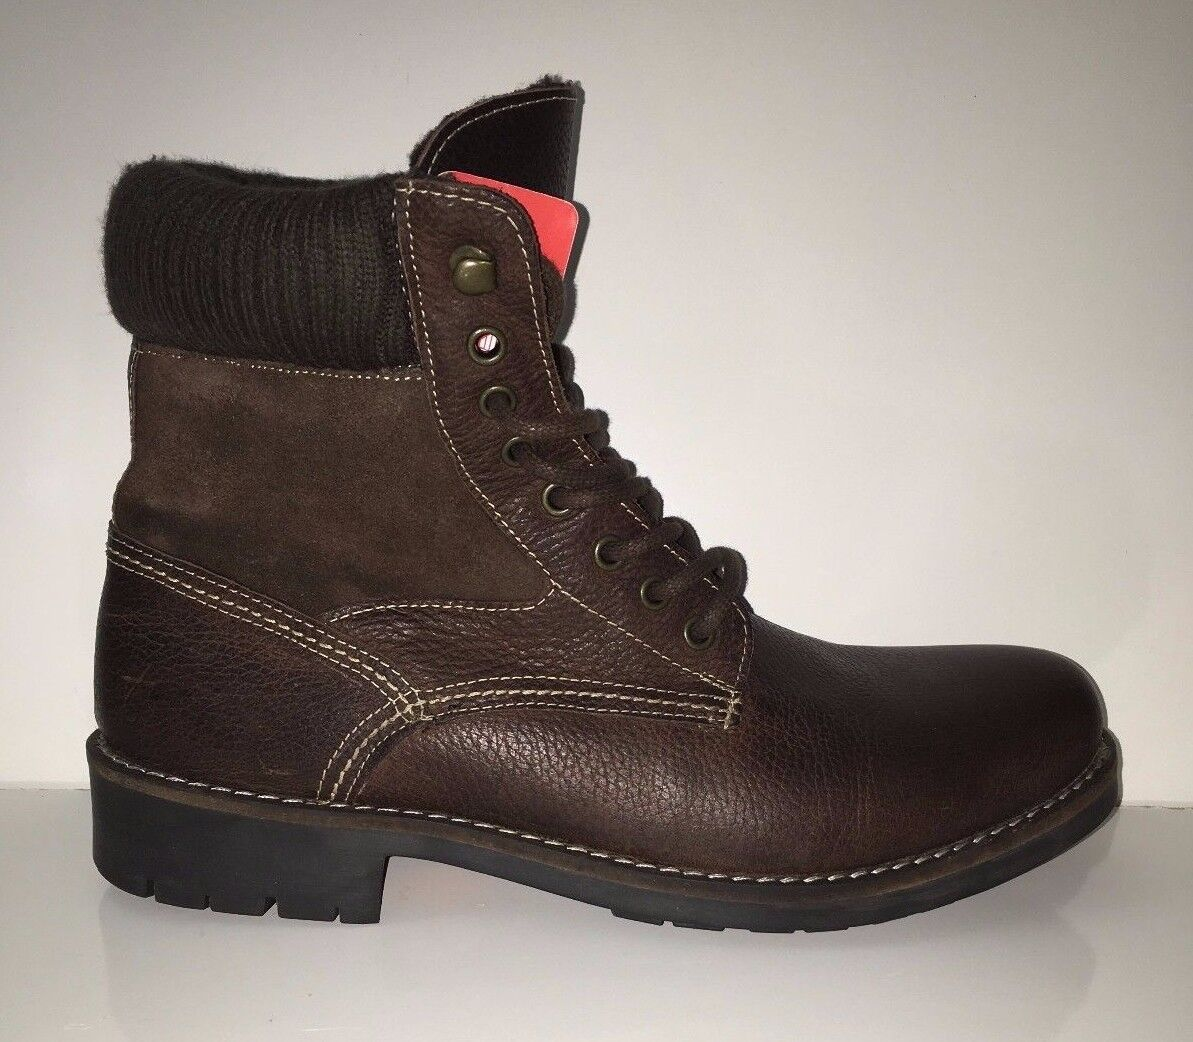 NEW  Red Tape Men's  Knitted Cuff  Plain Toe  Brown Leather Boots shoes Sz 9.5